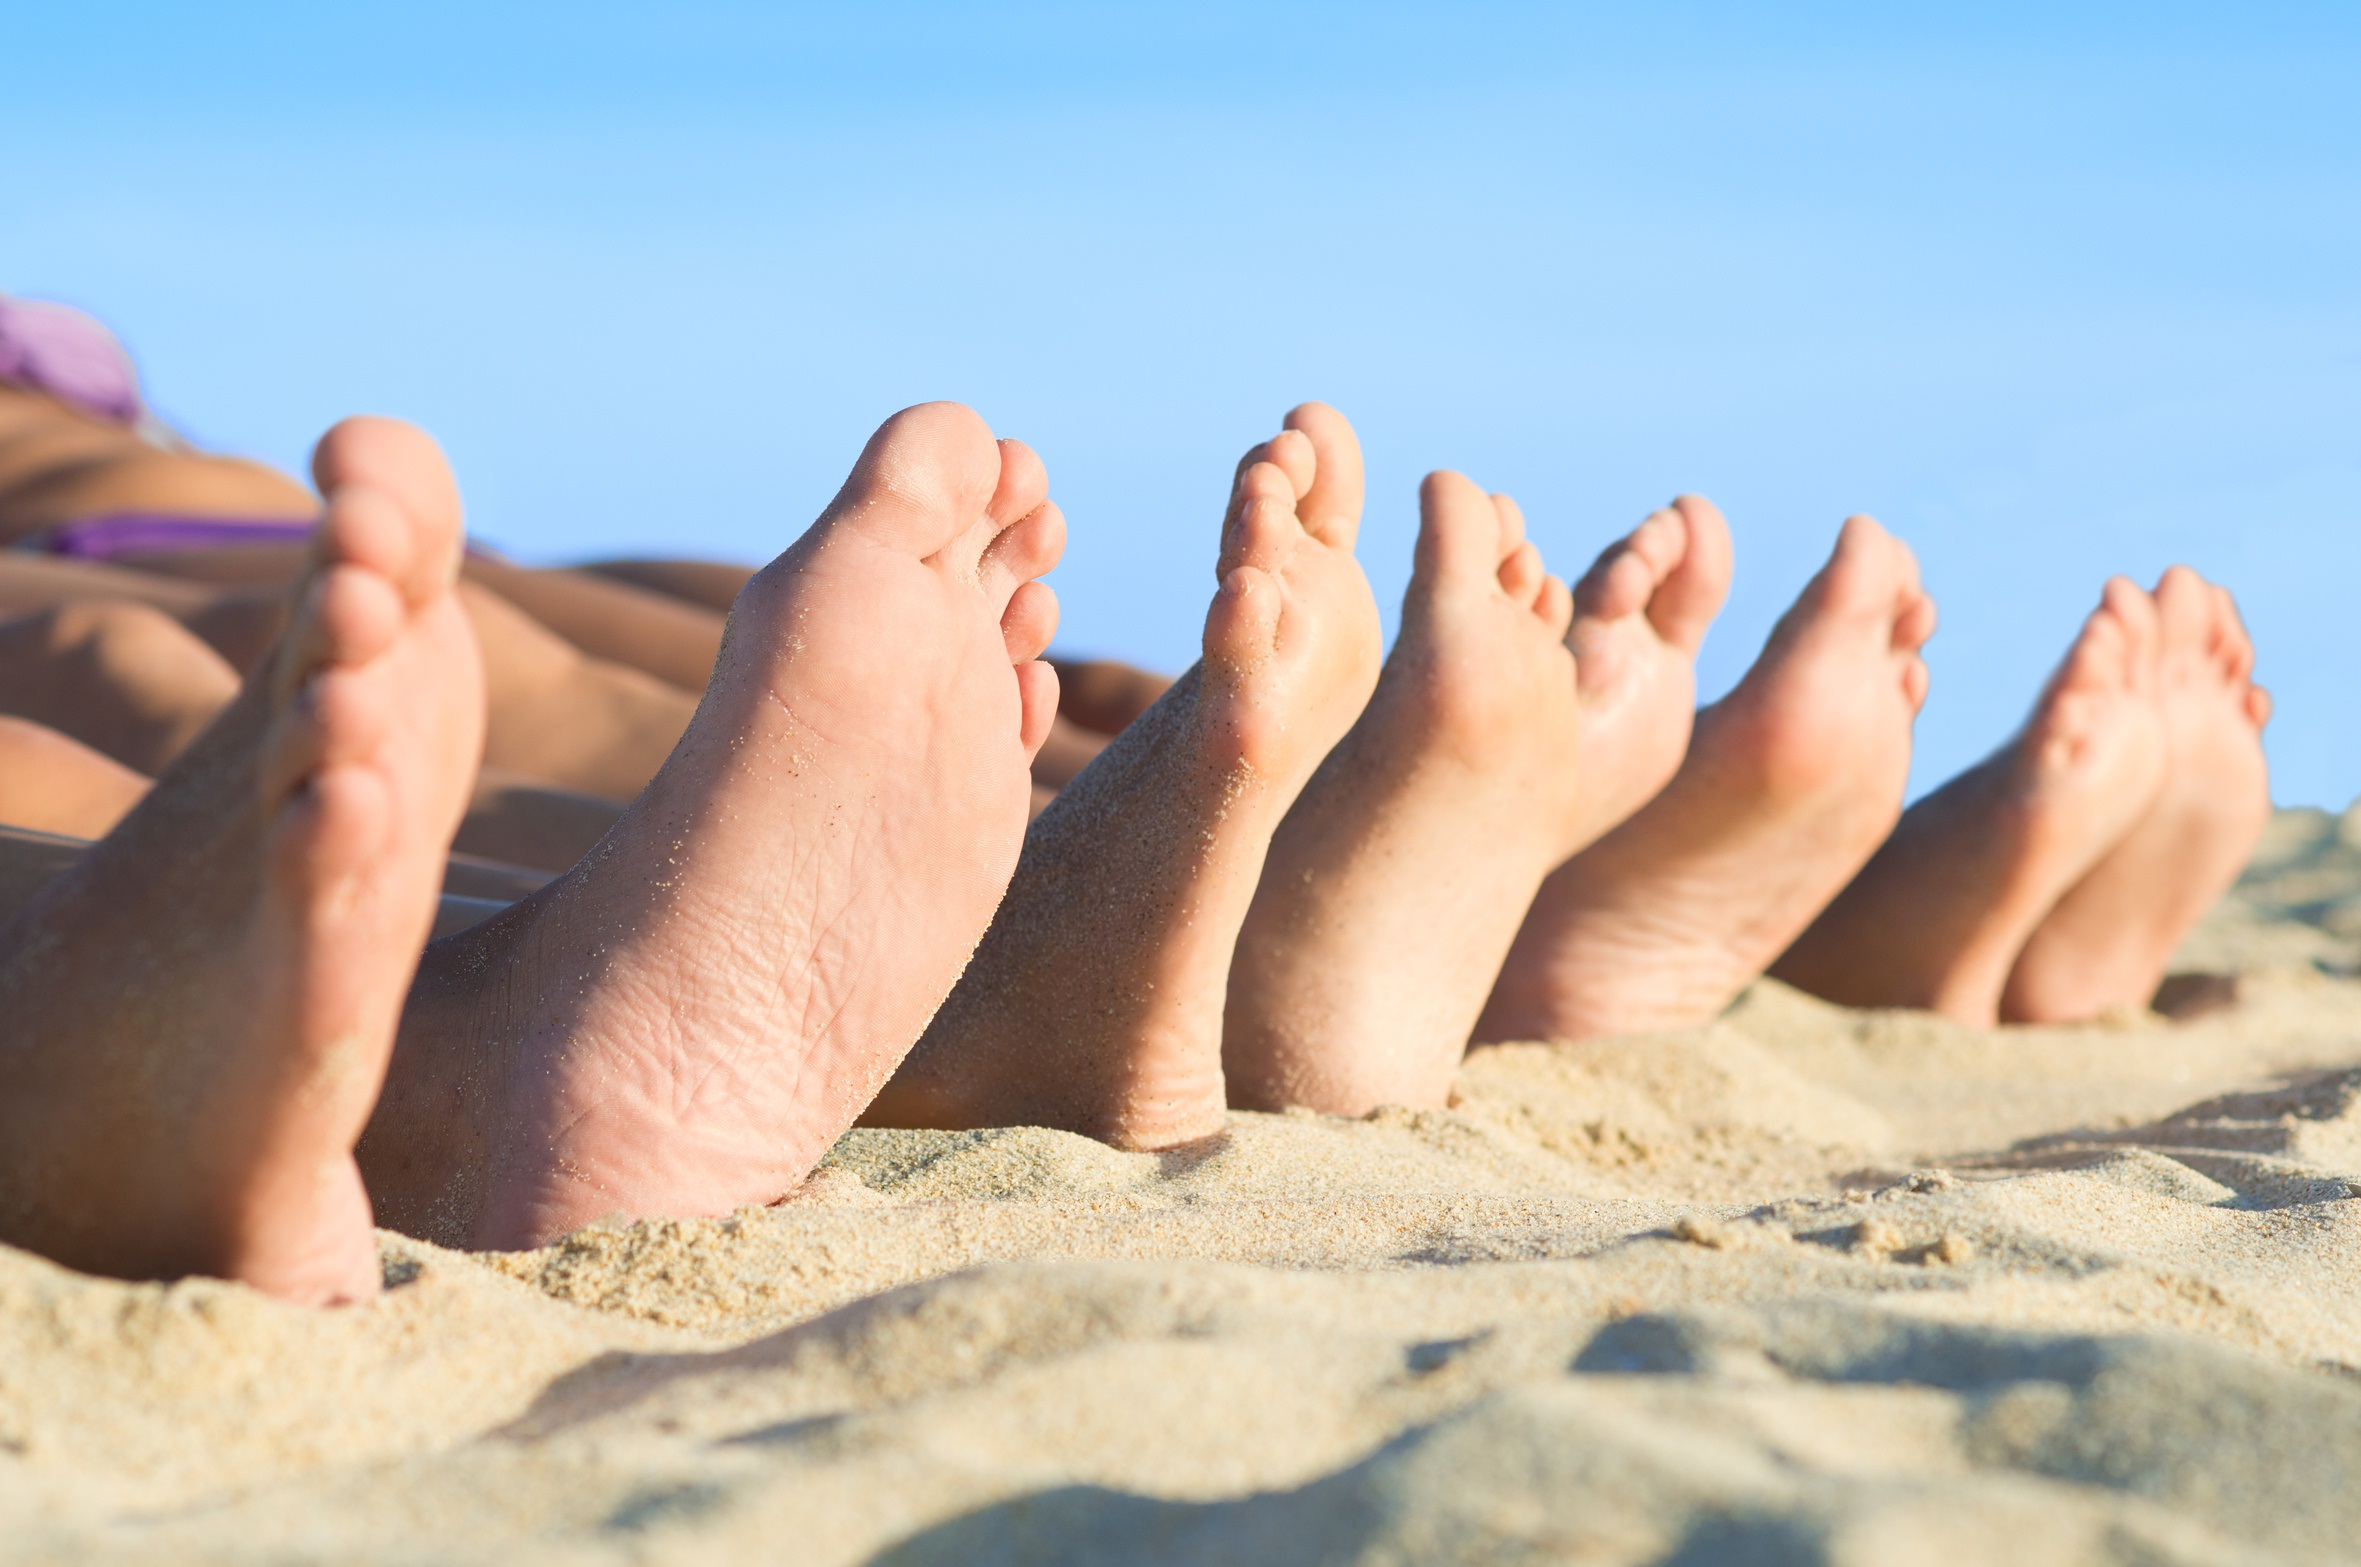 feet-beach-sand-bunion.jpg